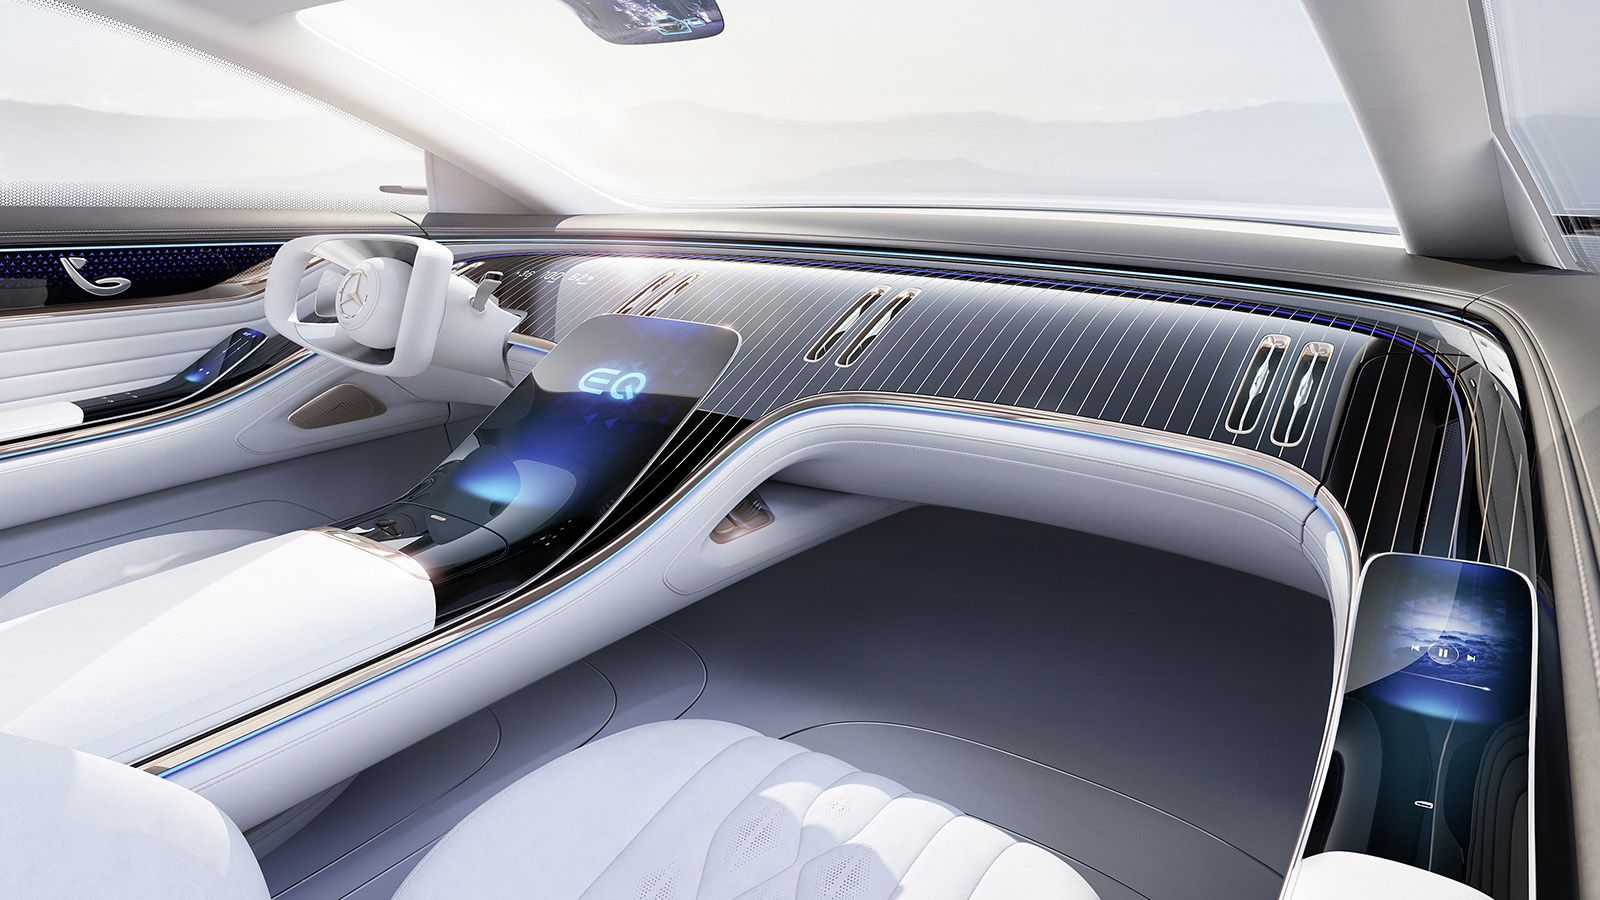 The Mercedes Benz Eq Interior Is Everything Great About Concept Cars